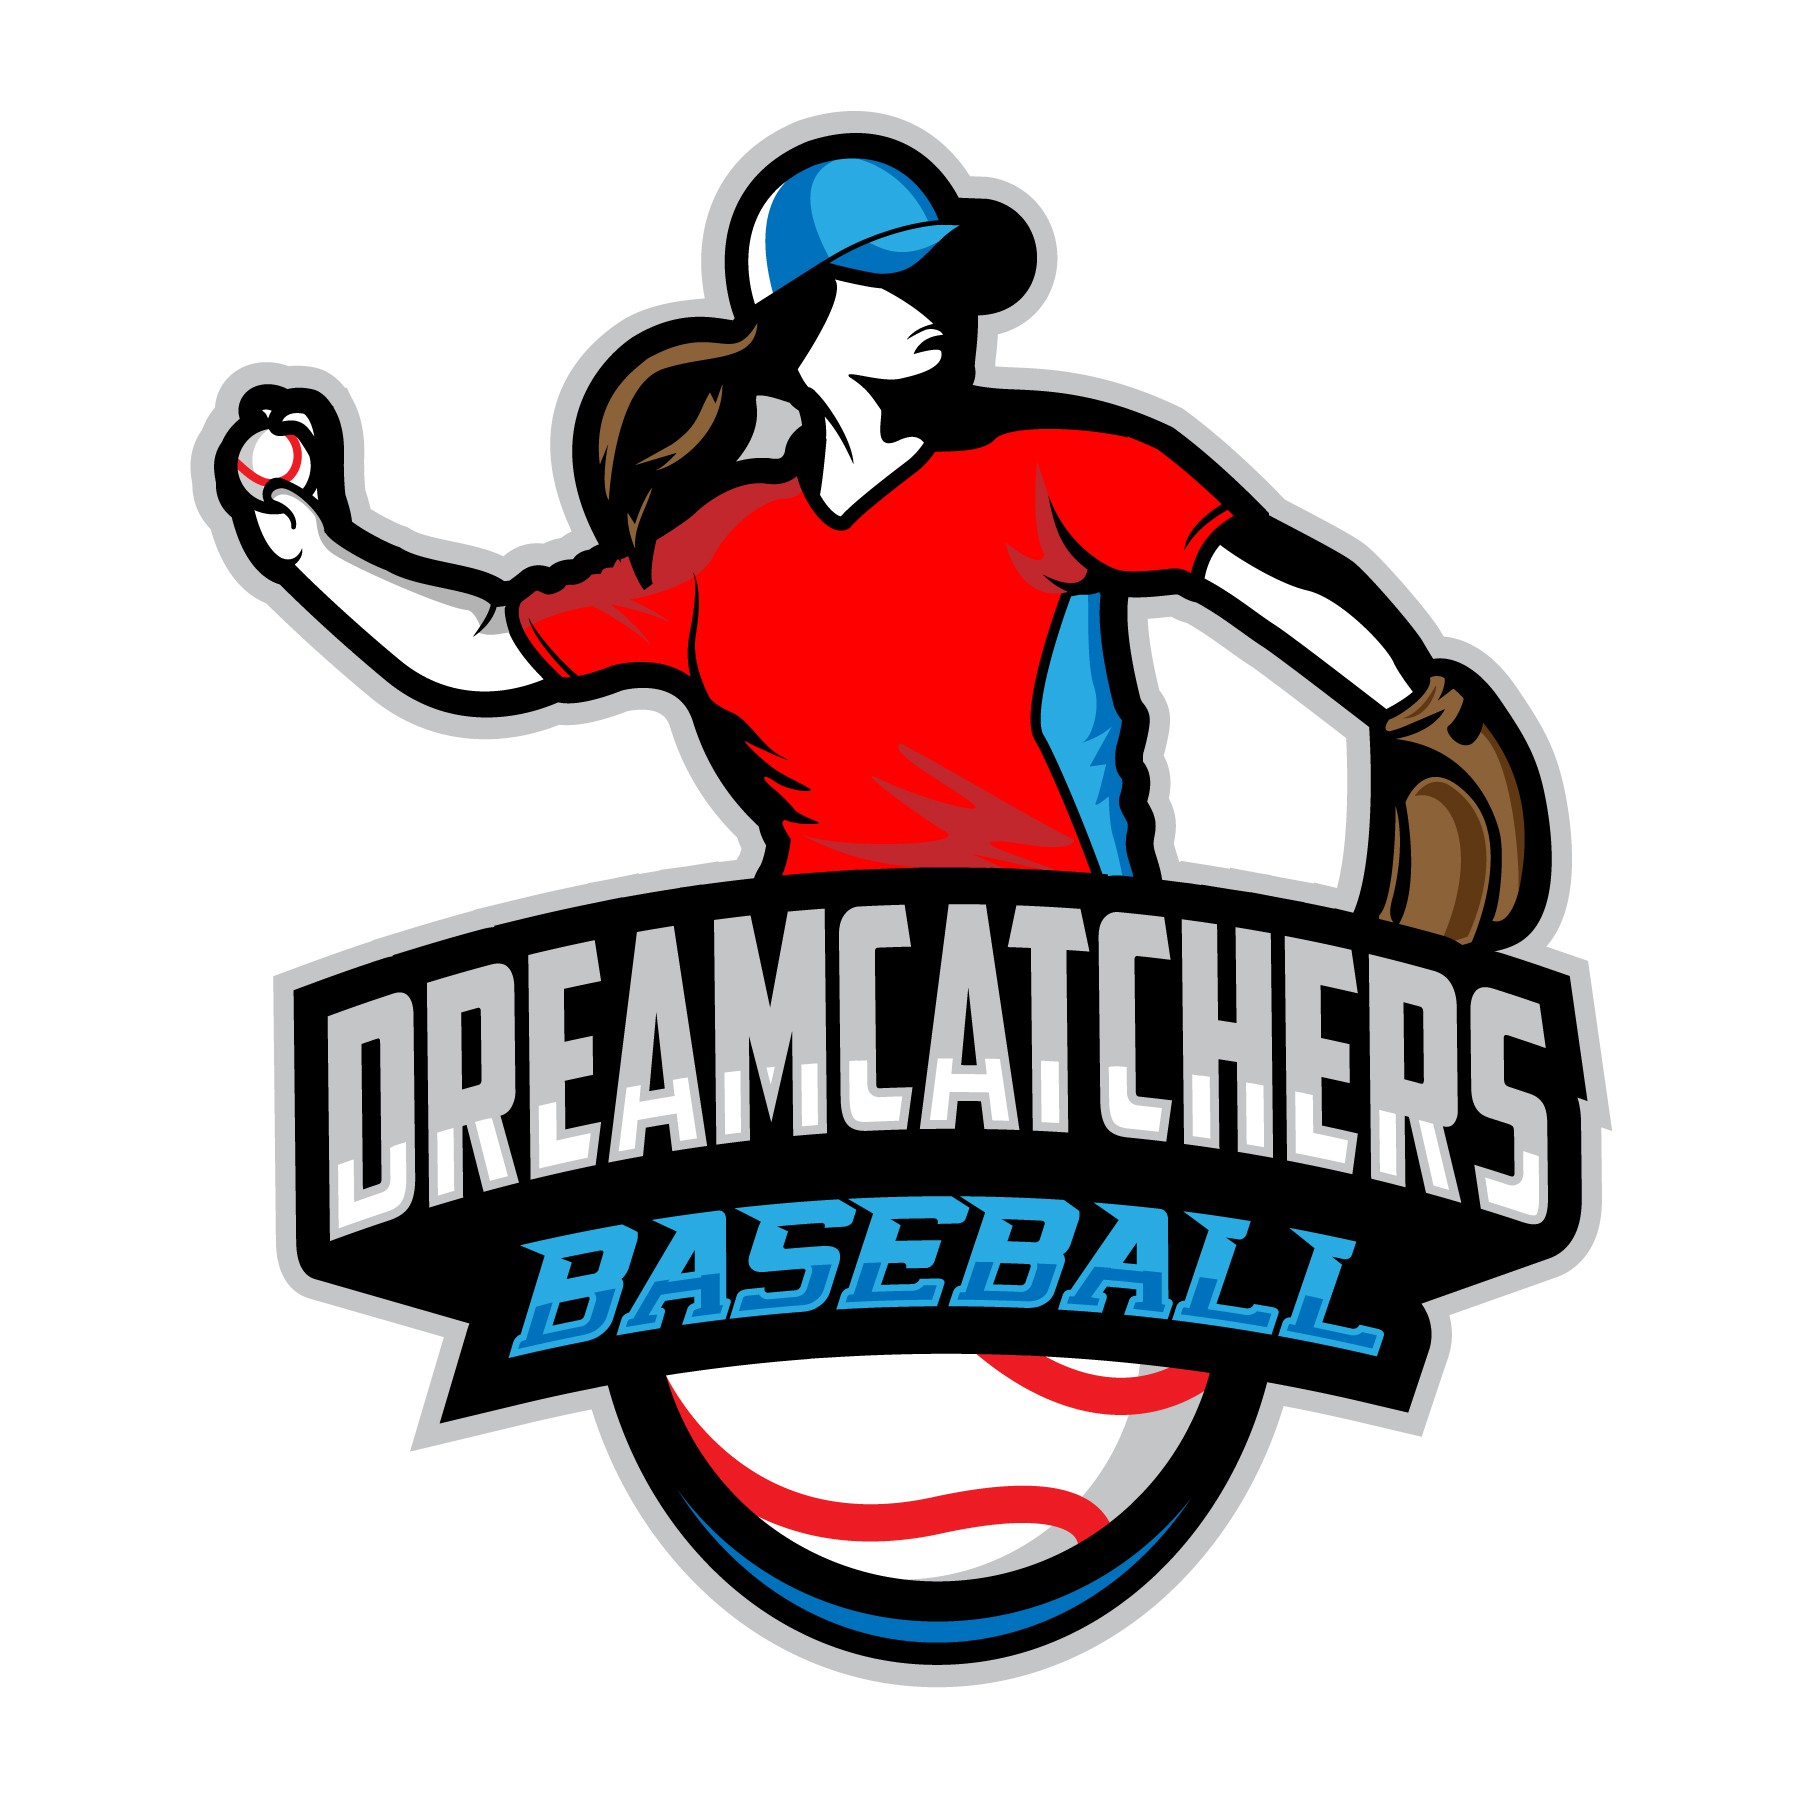 Create a logo for women's professional baseball team